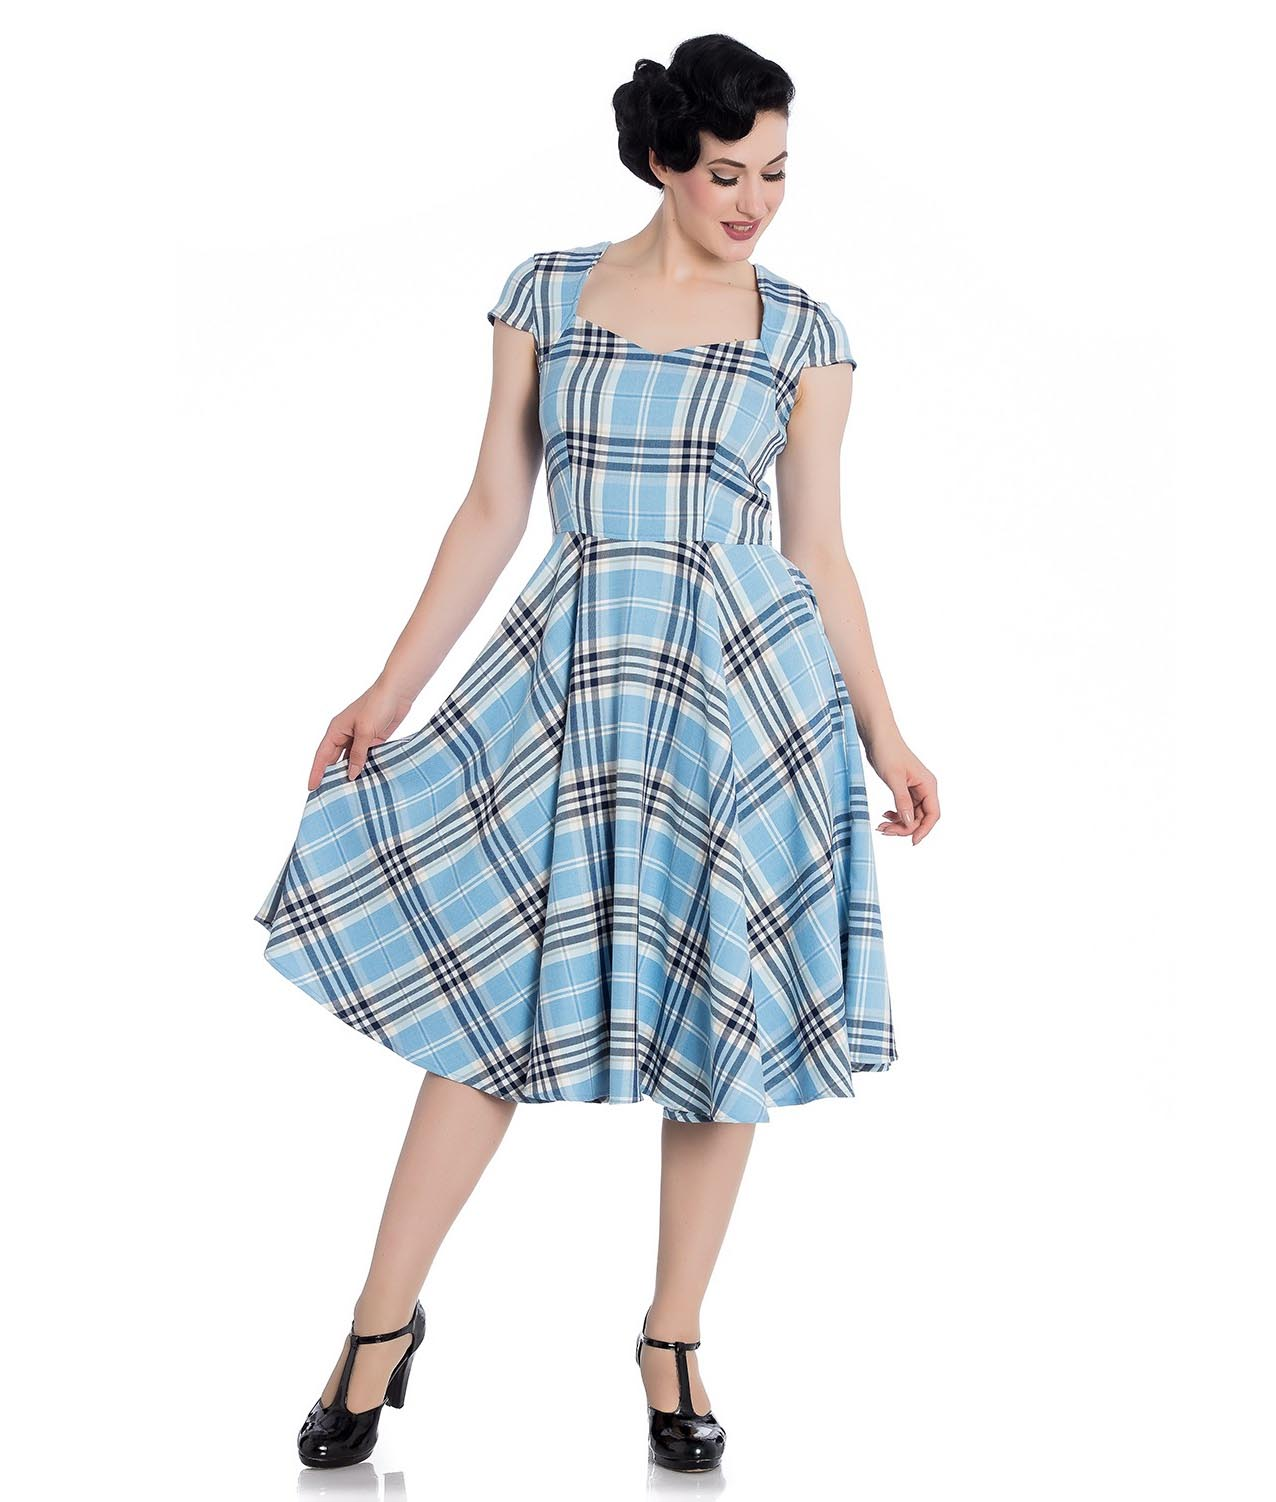 Hell-Bunny-Pinup-50s-Dress-ABERDEEN-Hogmony-Sky-Blue-amp-White-Tartan-All-Sizes thumbnail 19